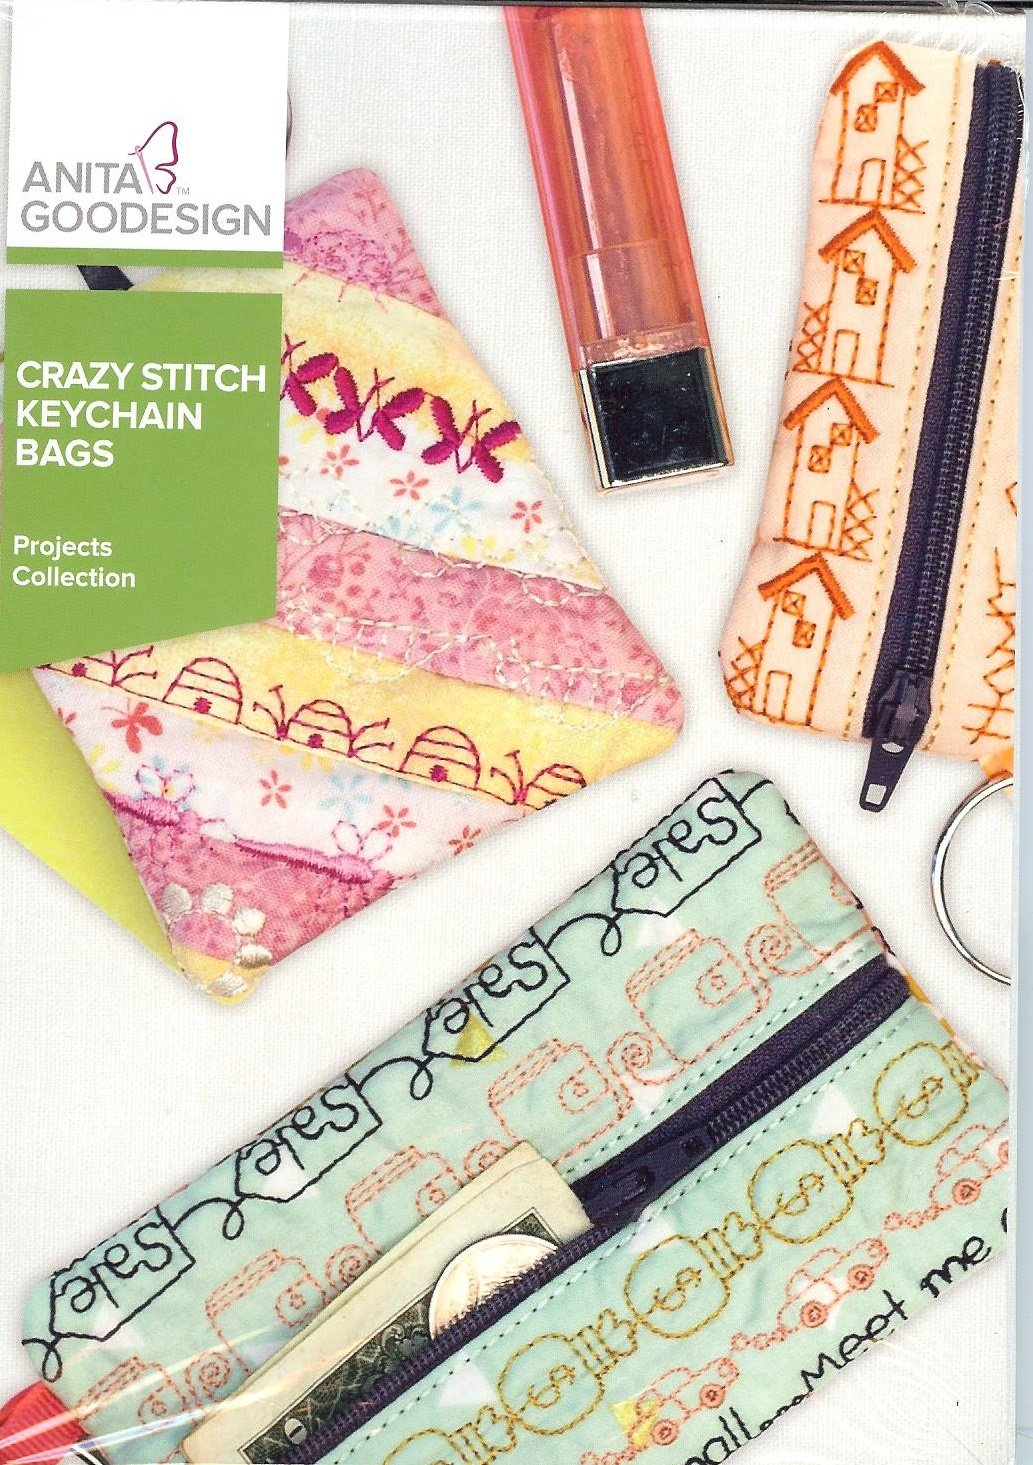 Anita Goodesign Projects Crazy Stitch Keychain Bags